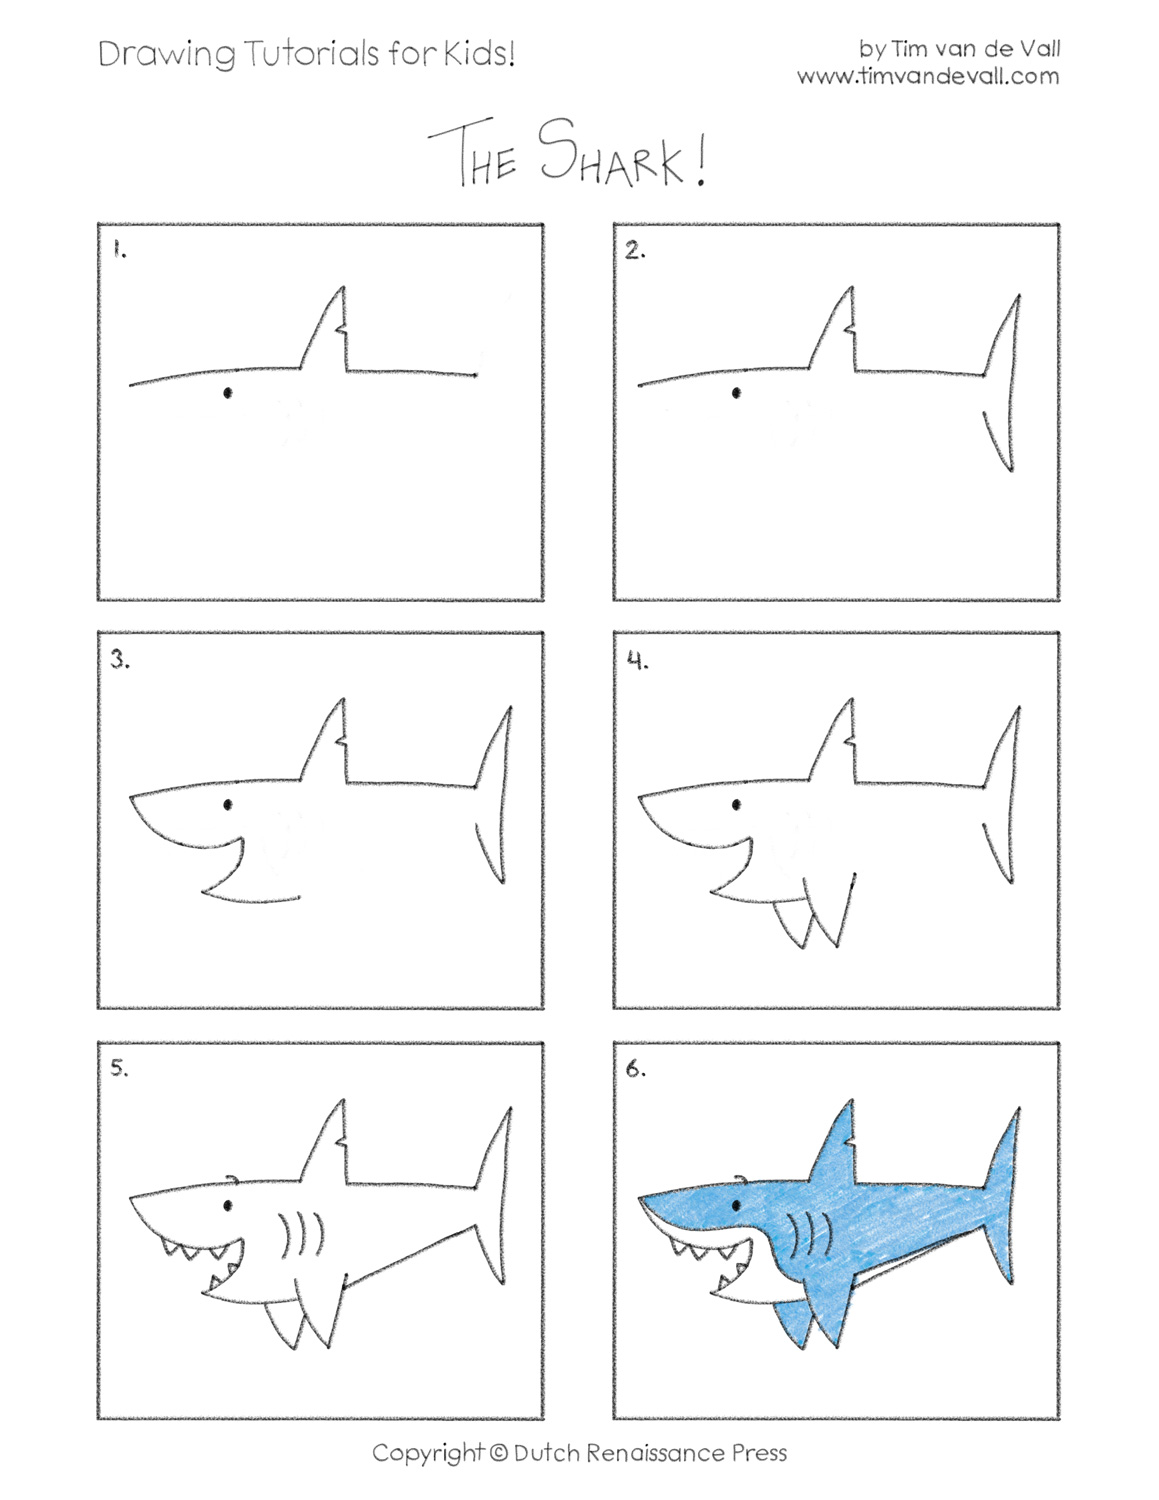 Pleasing Easy Drawing Tutorials For Kids Printable Drawing Lessons Short Hairstyles For Black Women Fulllsitofus